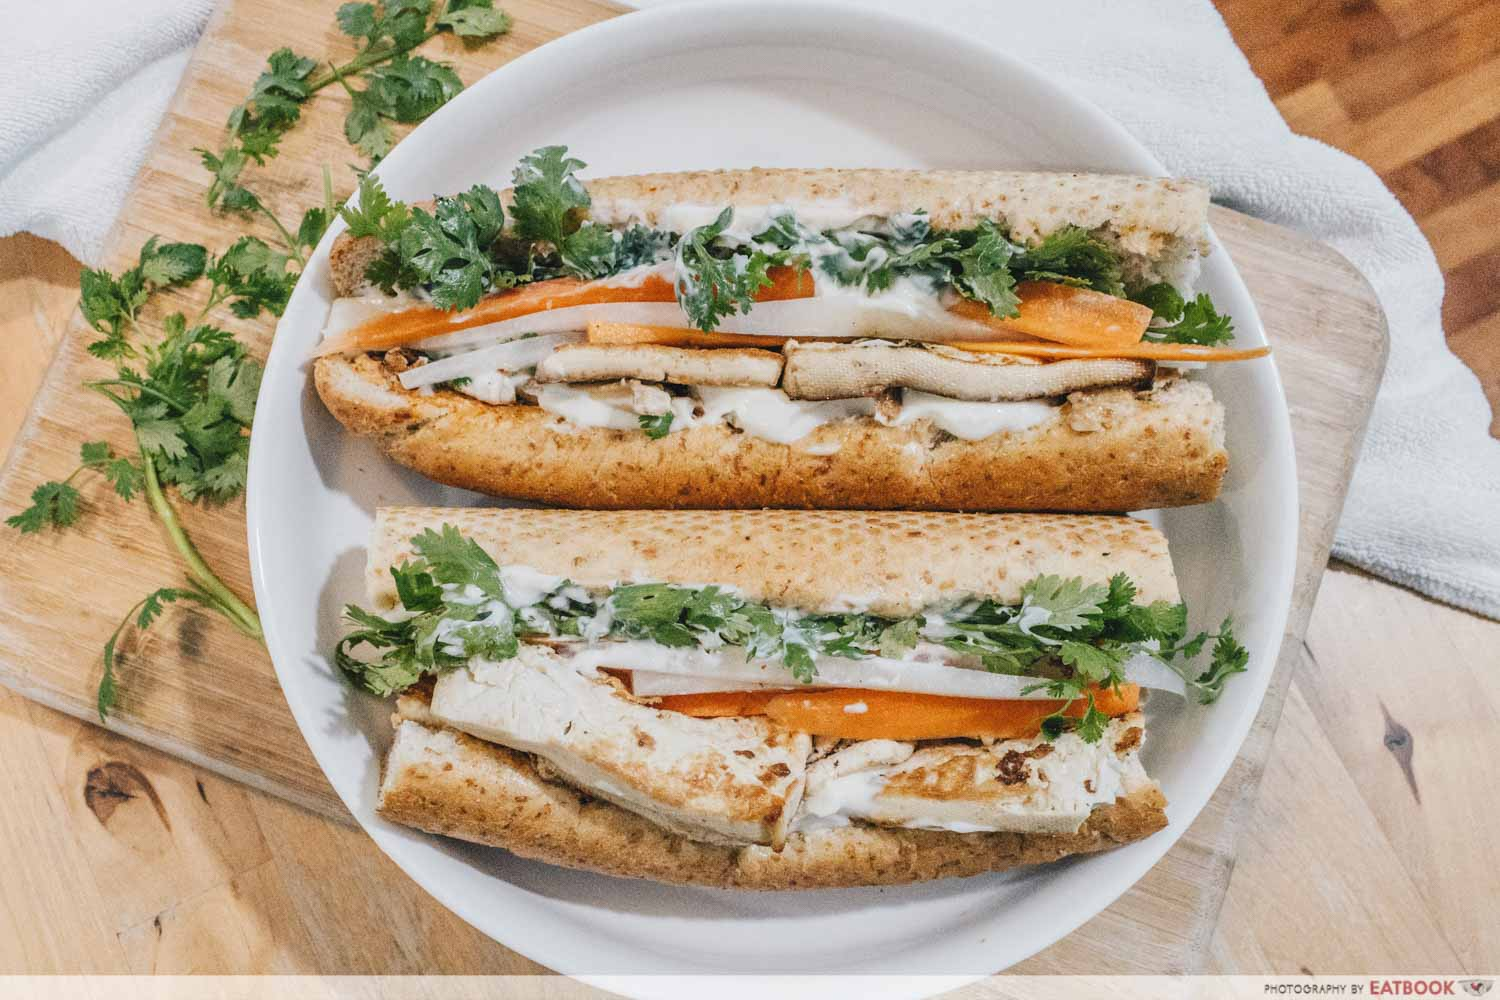 Sandwich Recipes - Tofu Banh Mi